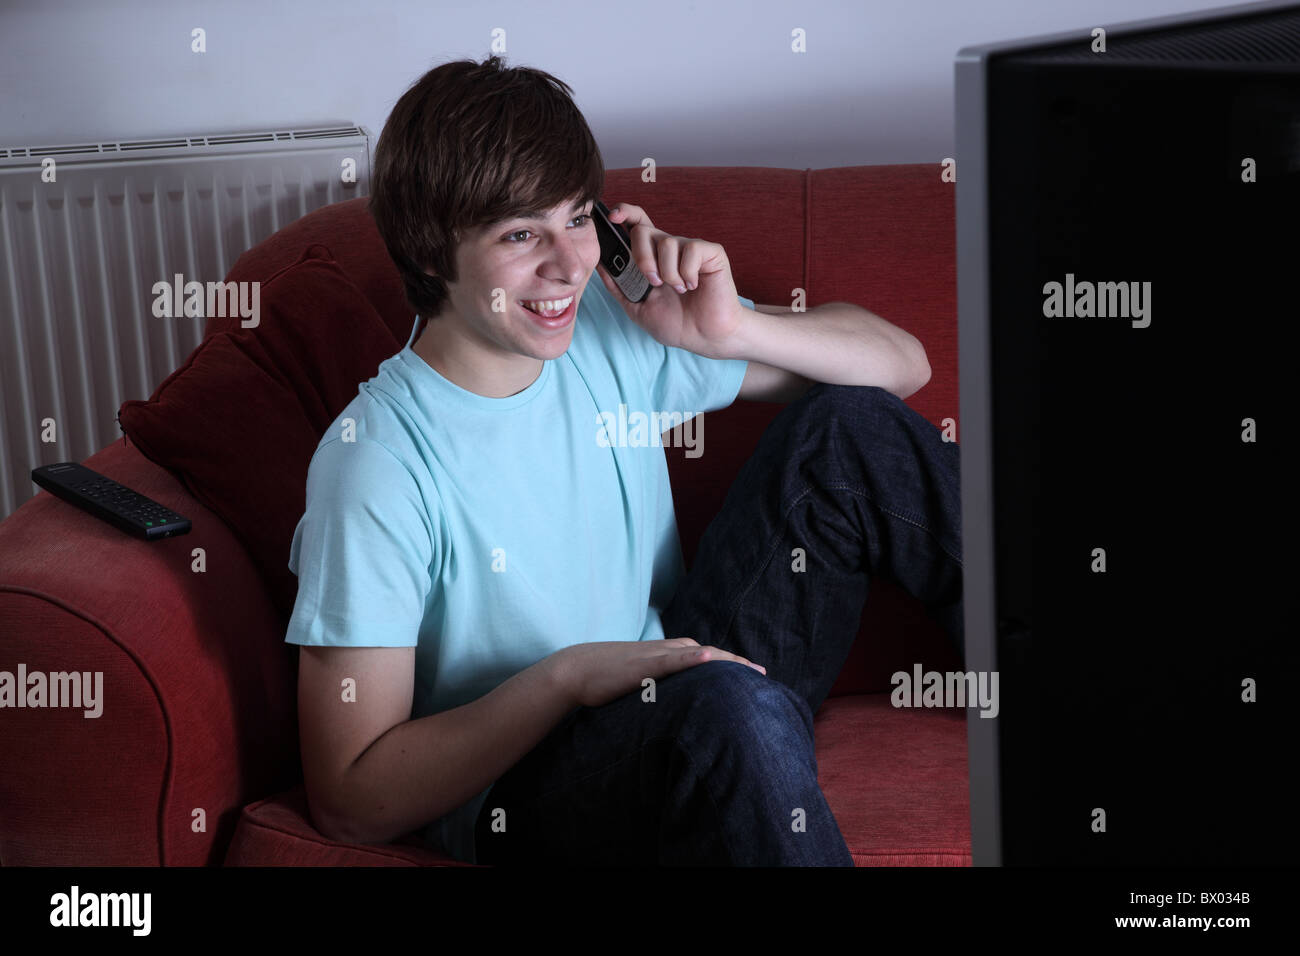 Young male holding a phone smiling and watching tv Stock Photo